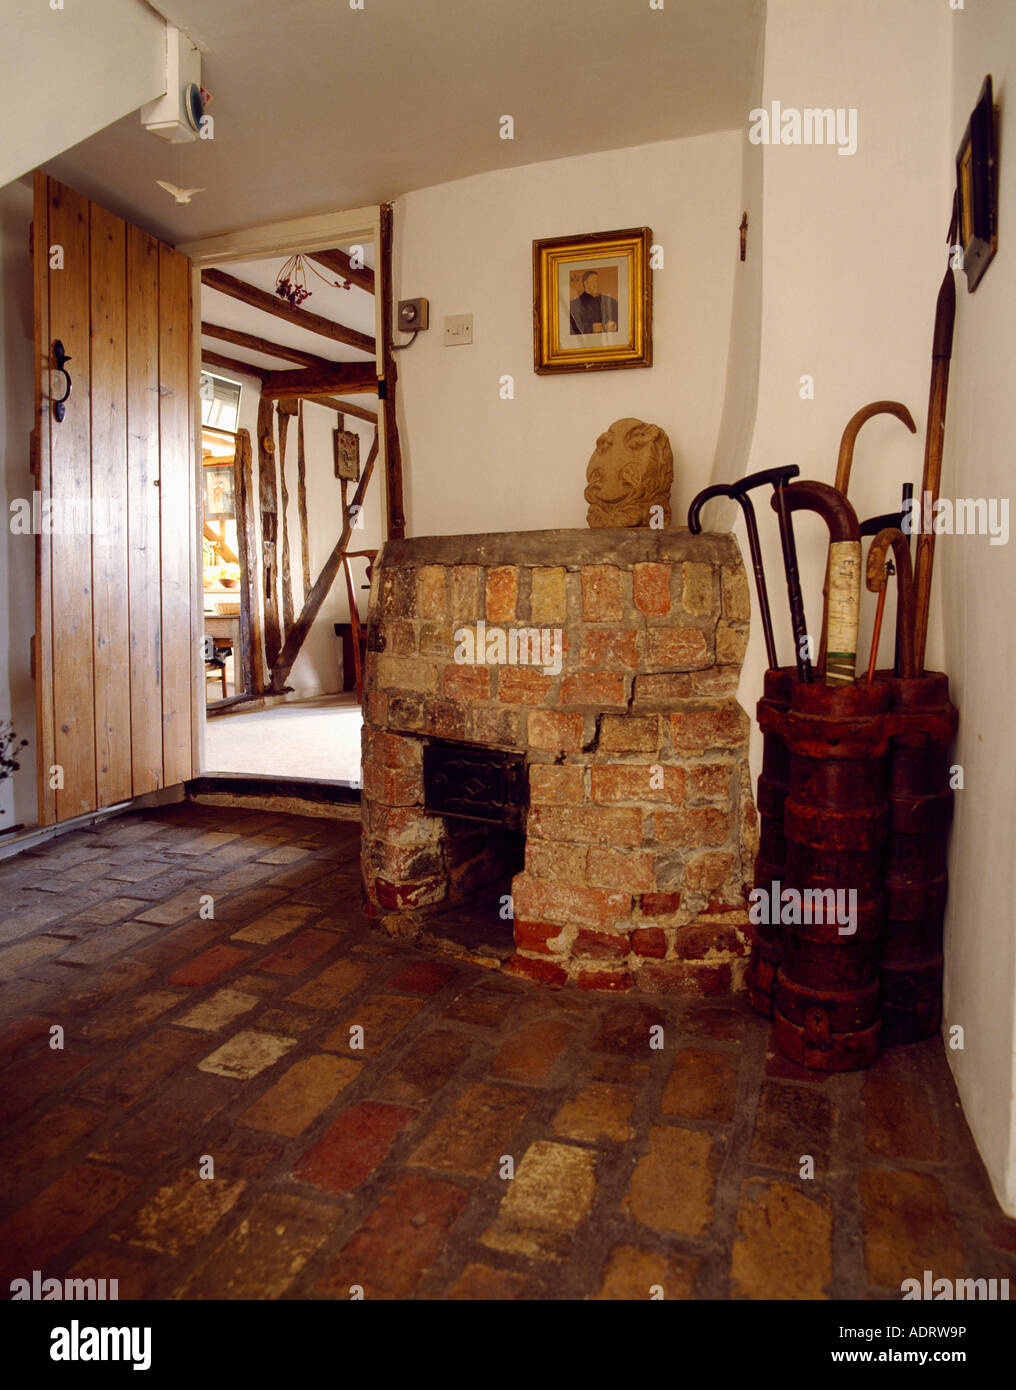 old brick fireplace in the corner of cottage hall with brick floor